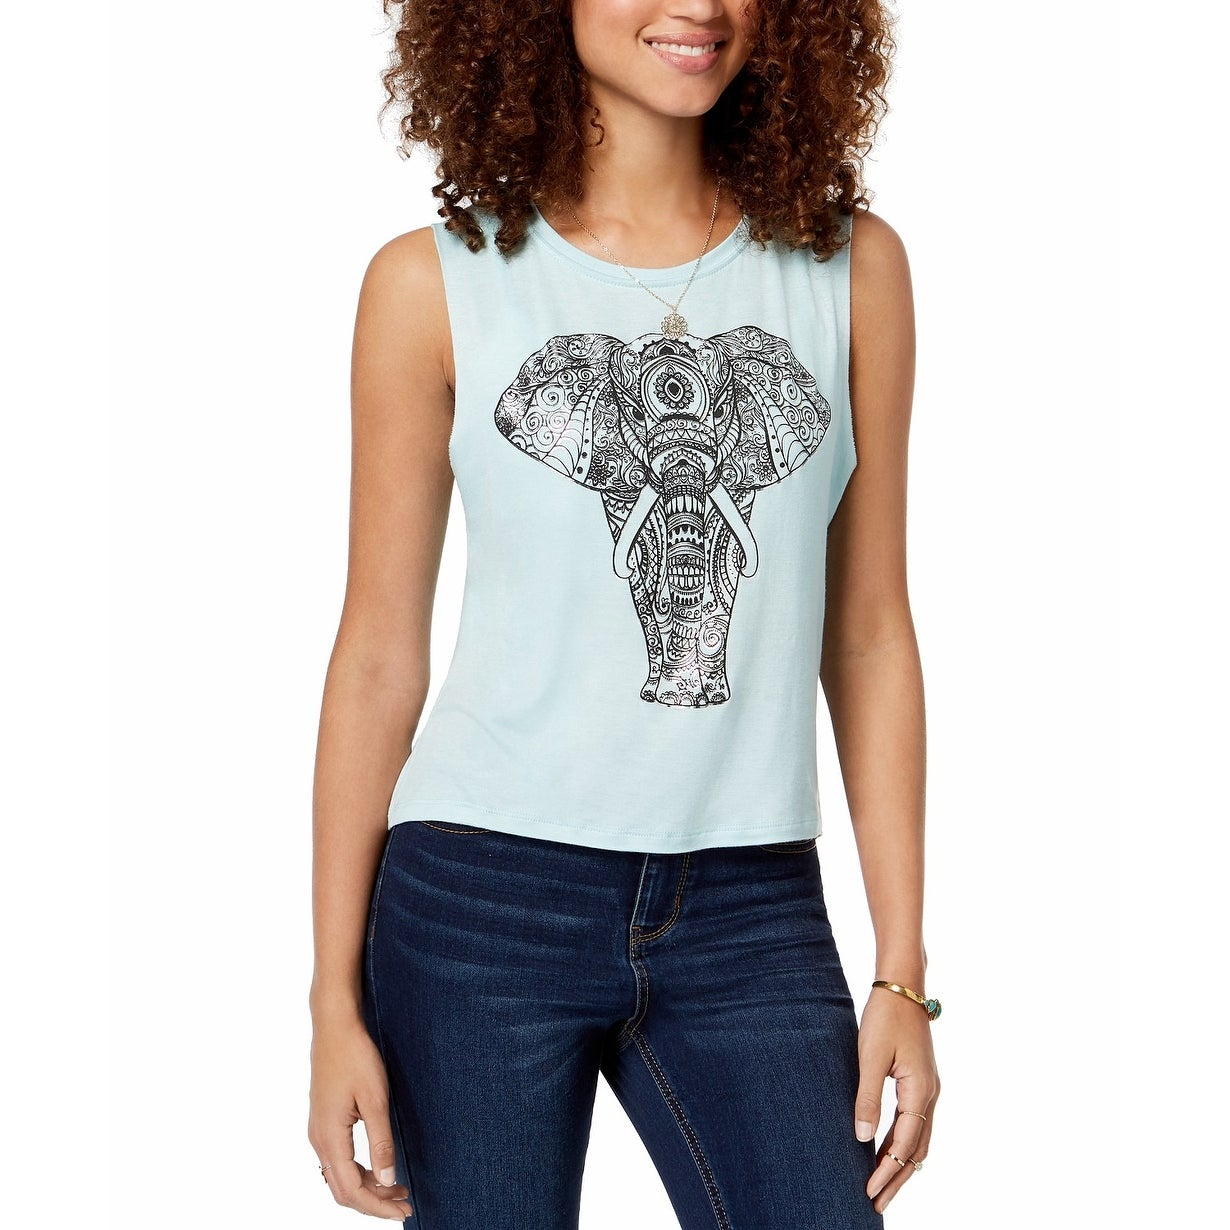 742ae1e0 Rebellious One Tops | Find Great Women's Clothing Deals Shopping at  Overstock